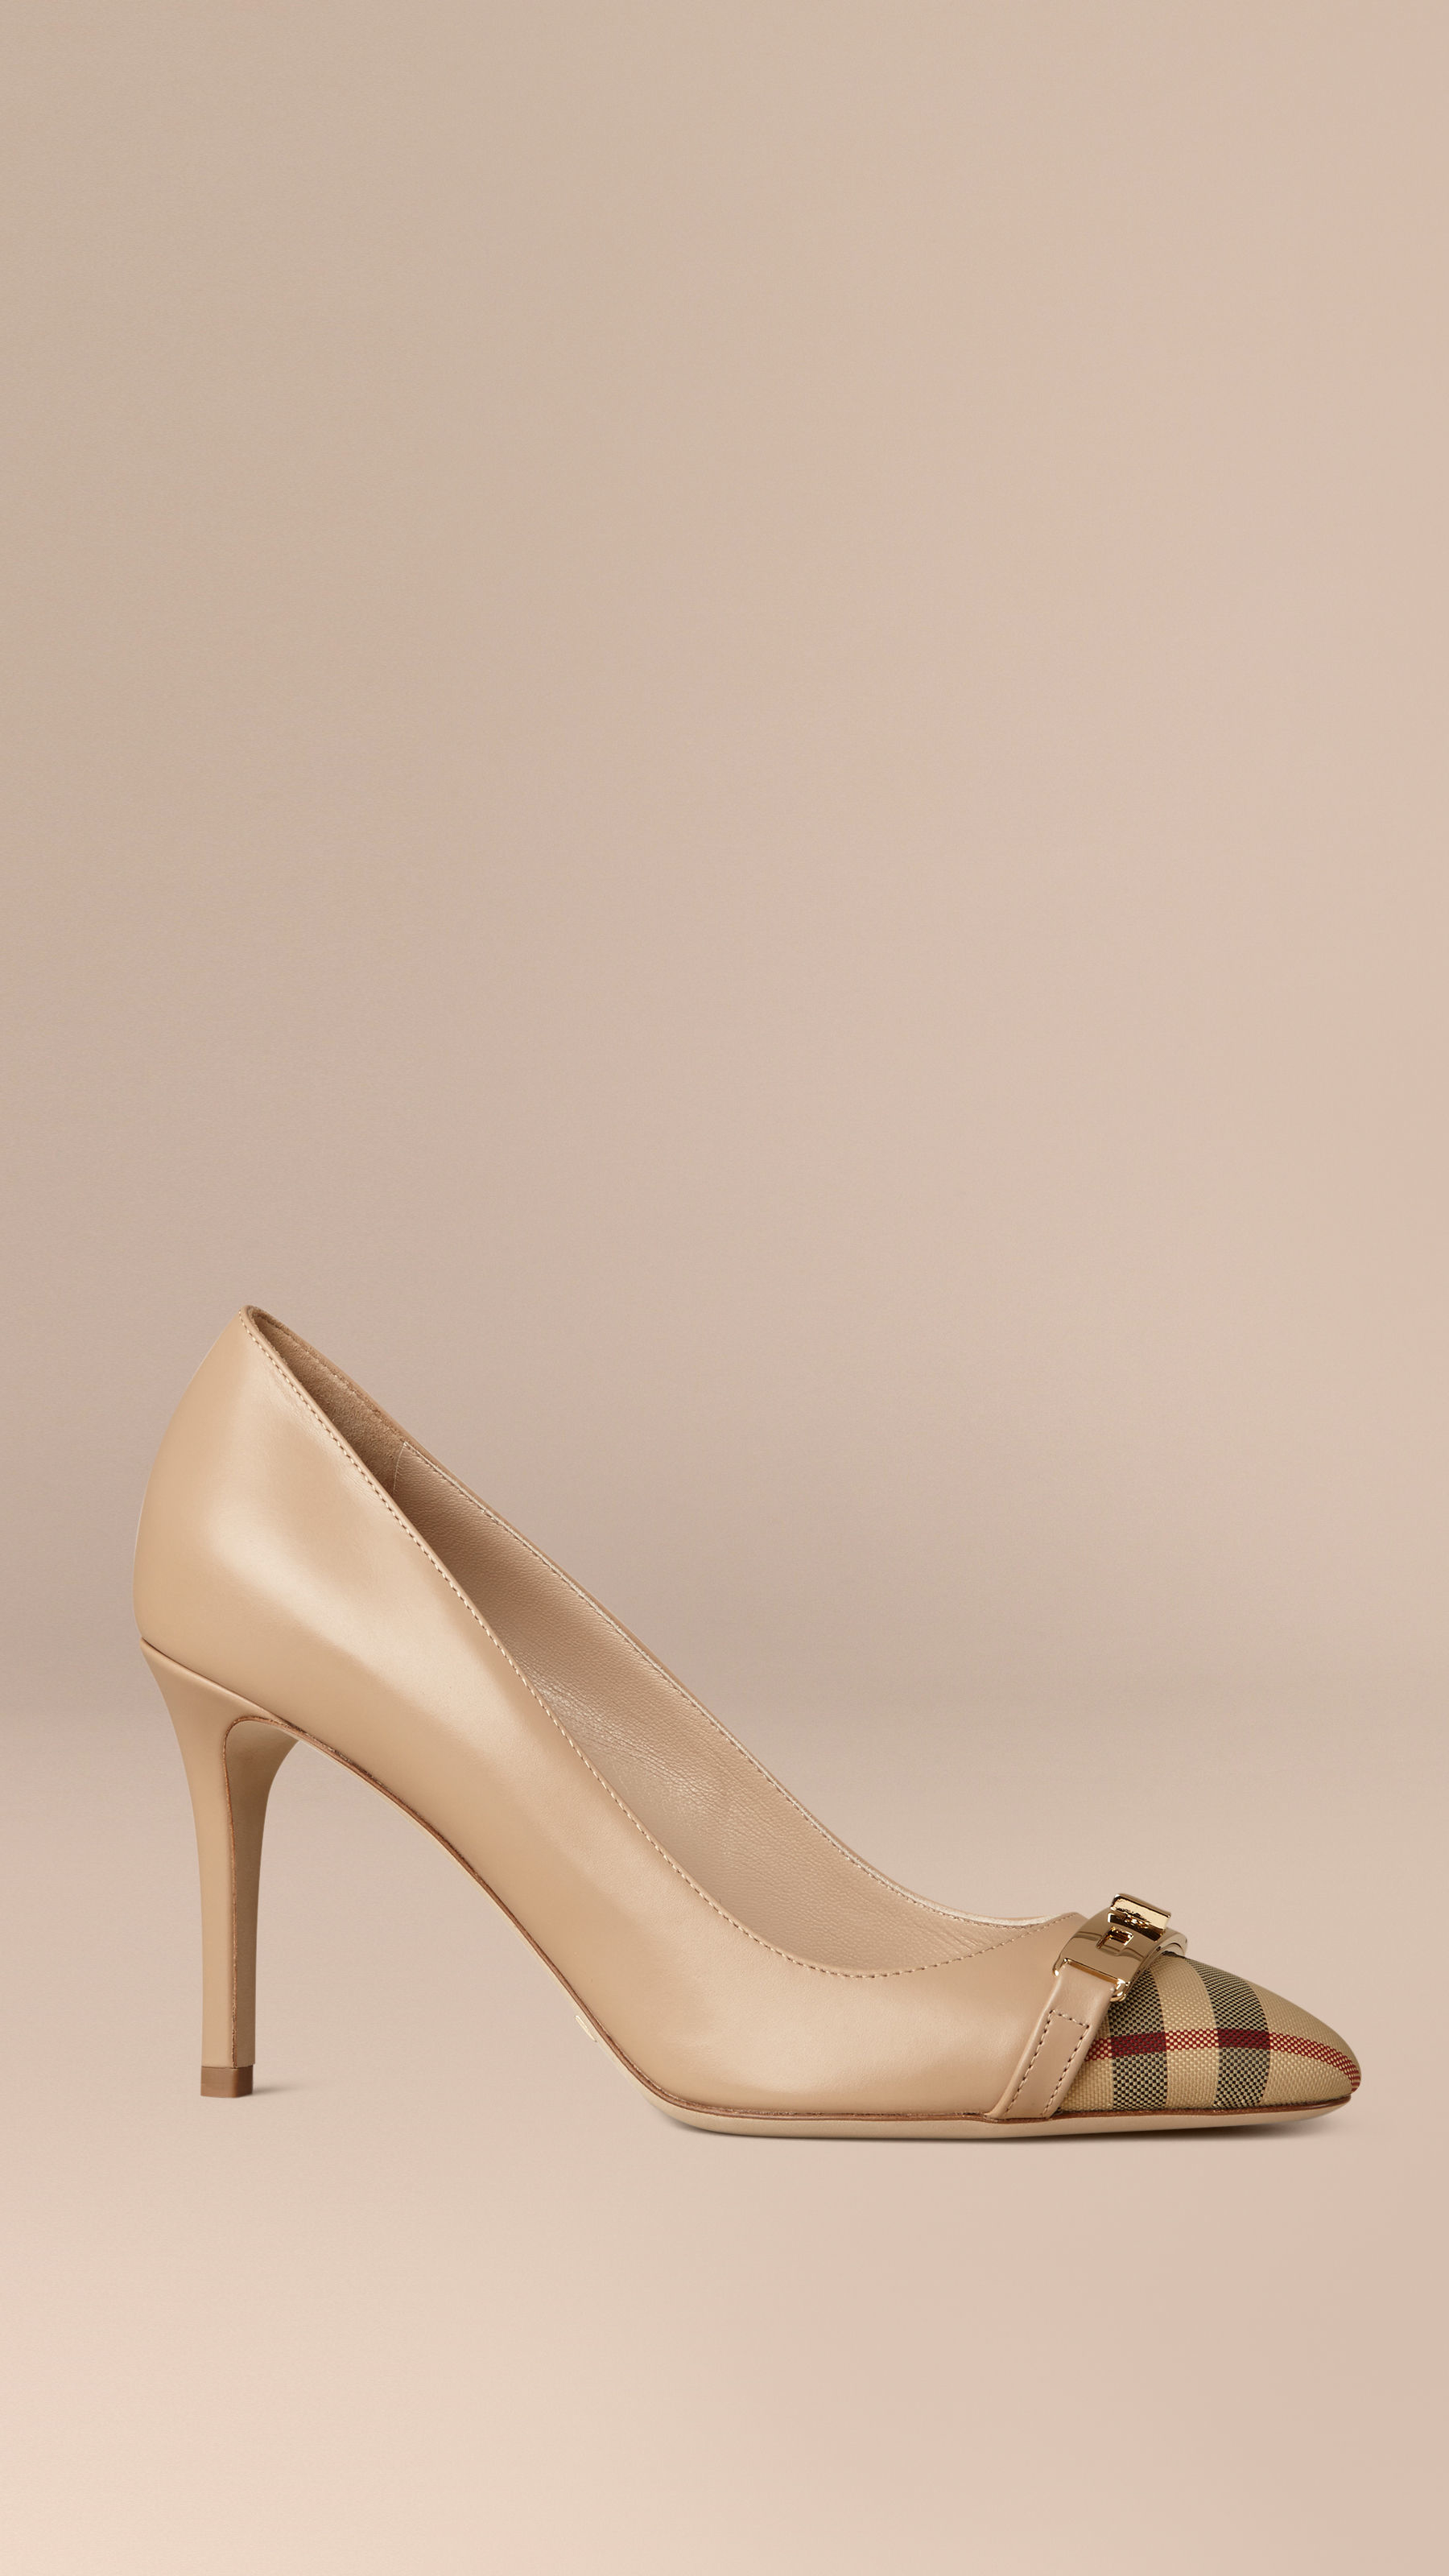 73e0f3274a Burberry Horseferry Check Leather Pumps Light Nude in Natural - Lyst